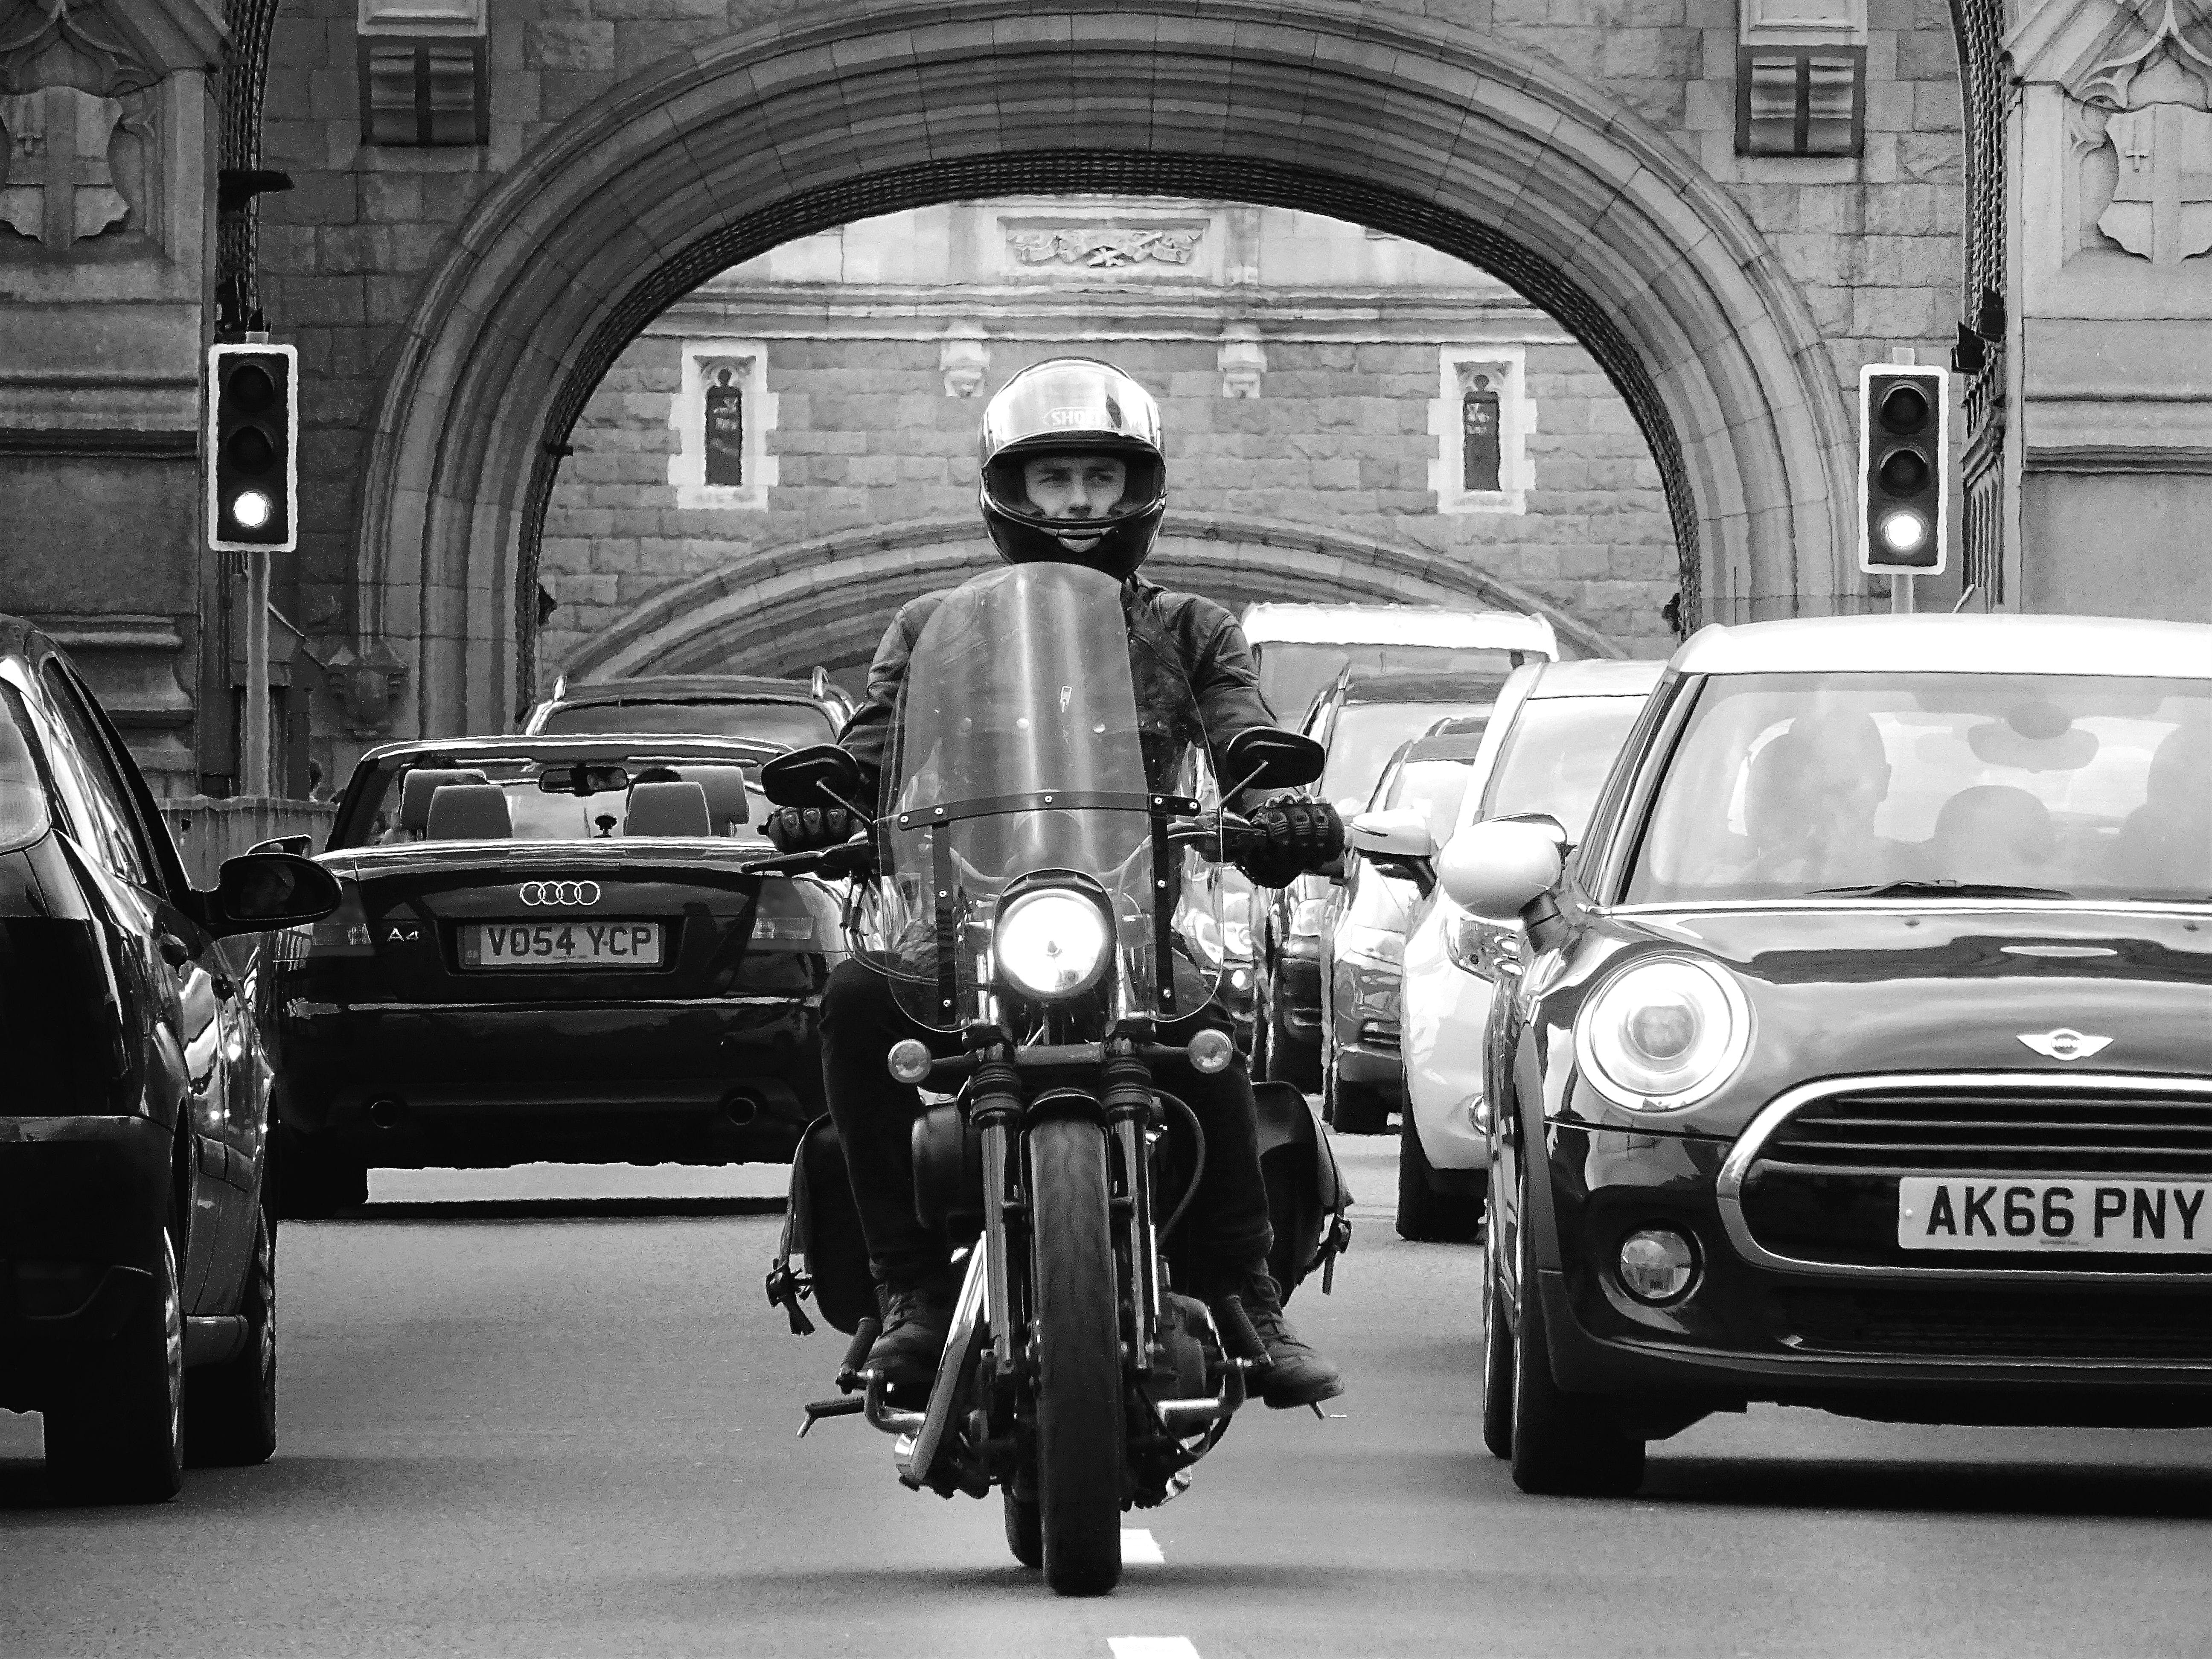 Man Riding Motorcycle Grayscale Photograhy